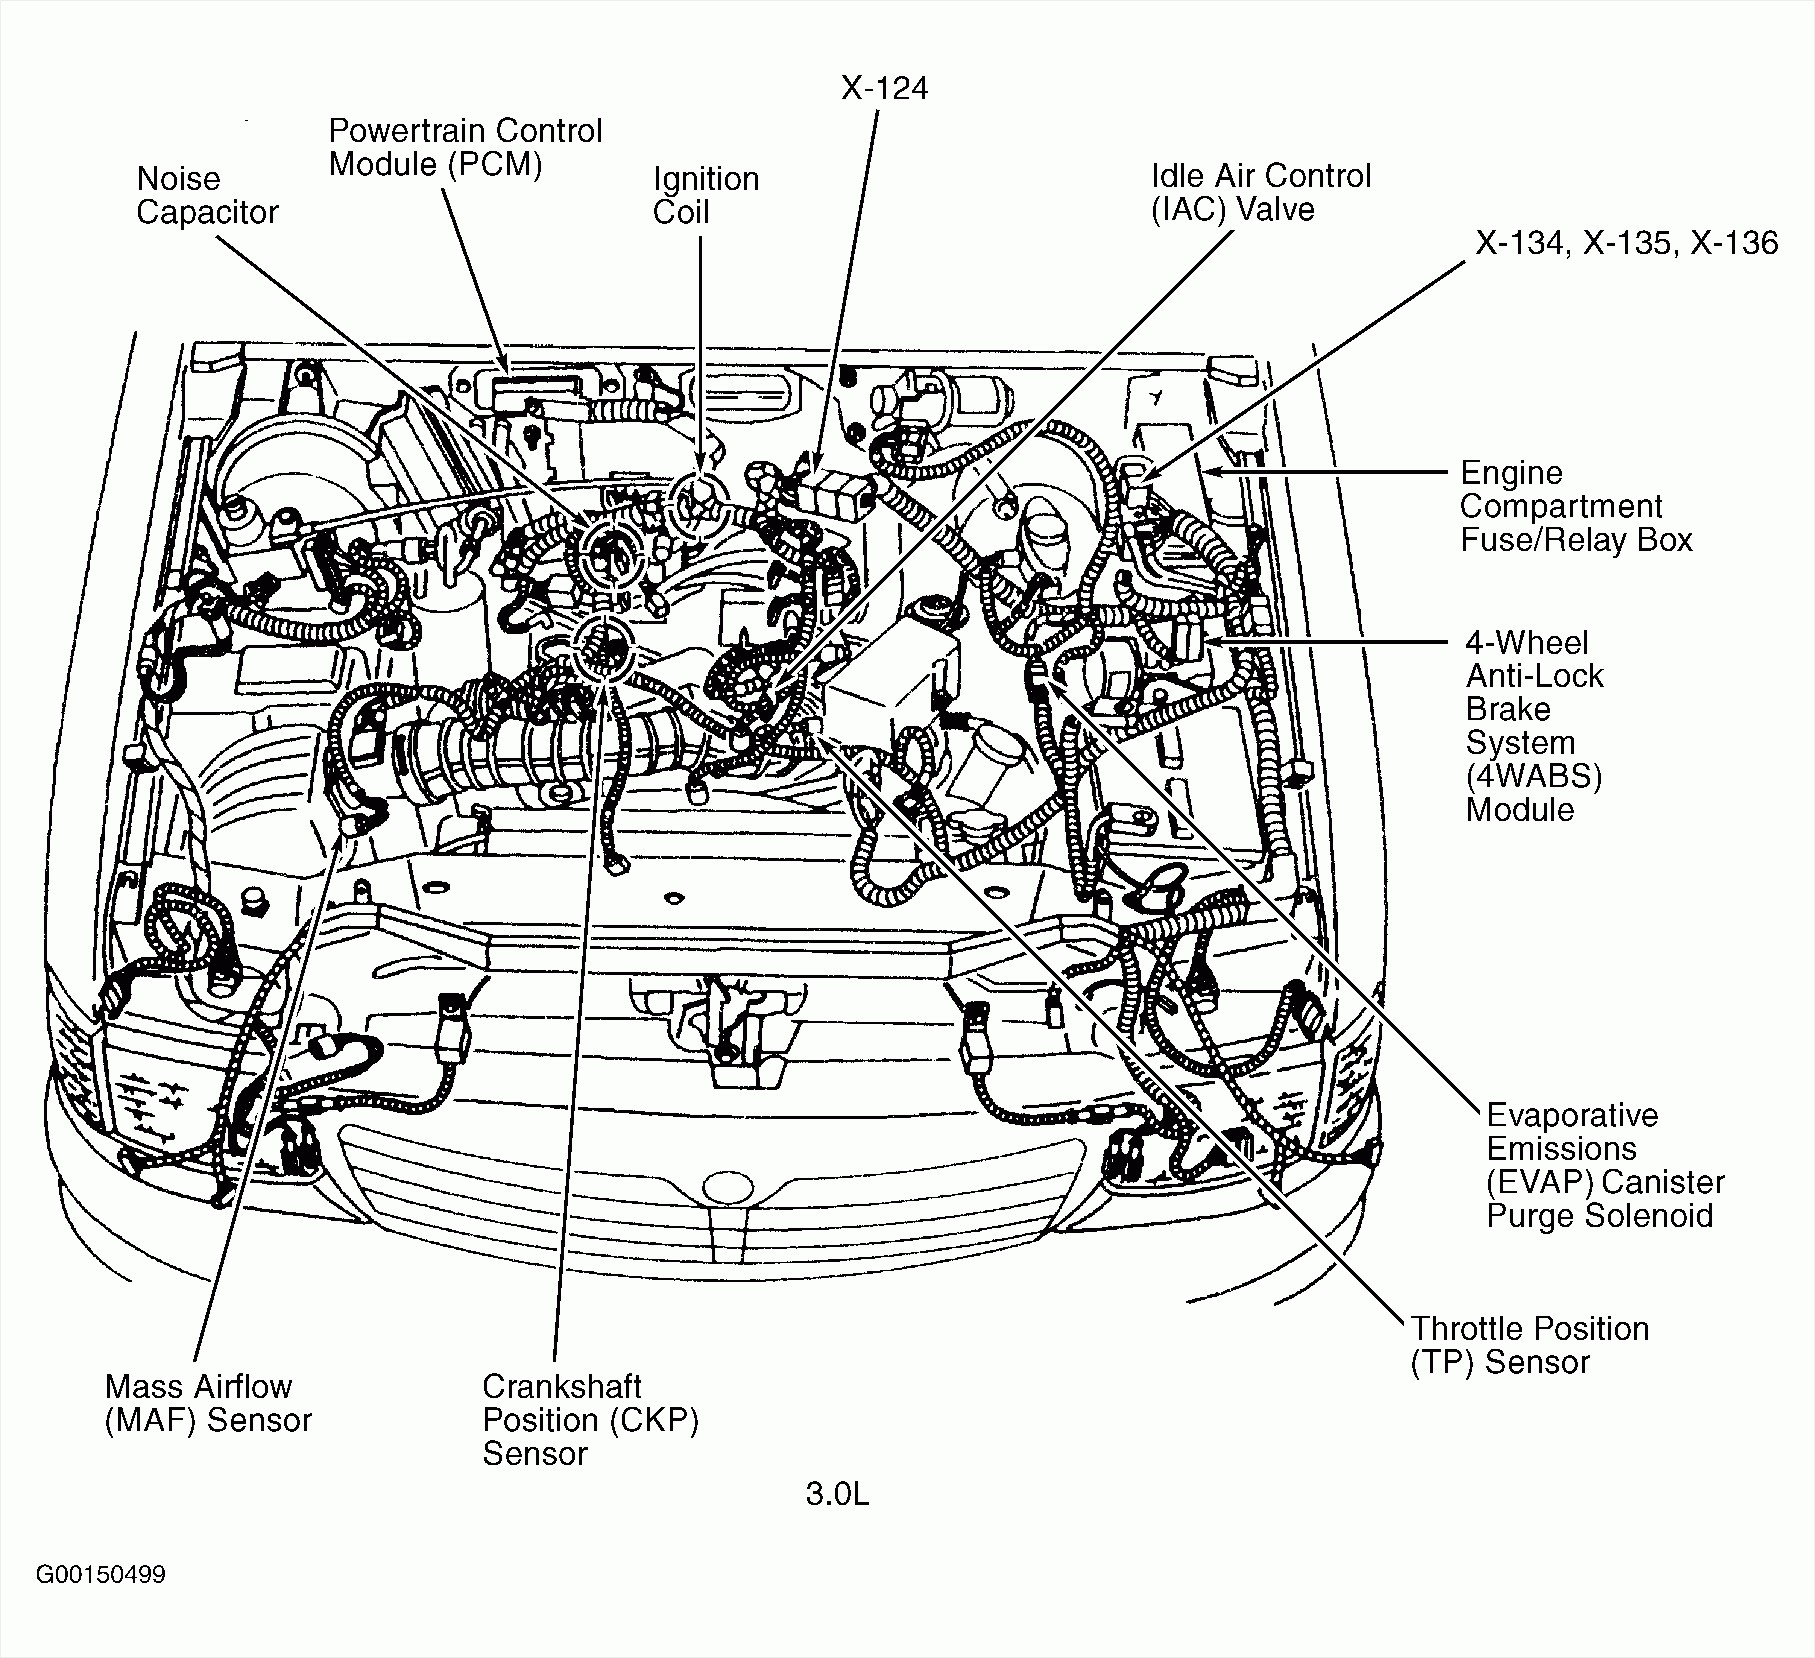 2002 Jeep Liberty Engine Diagram - Center Wiring Diagram drain-housing -  drain-housing.iosonointersex.itiosonointersex.it